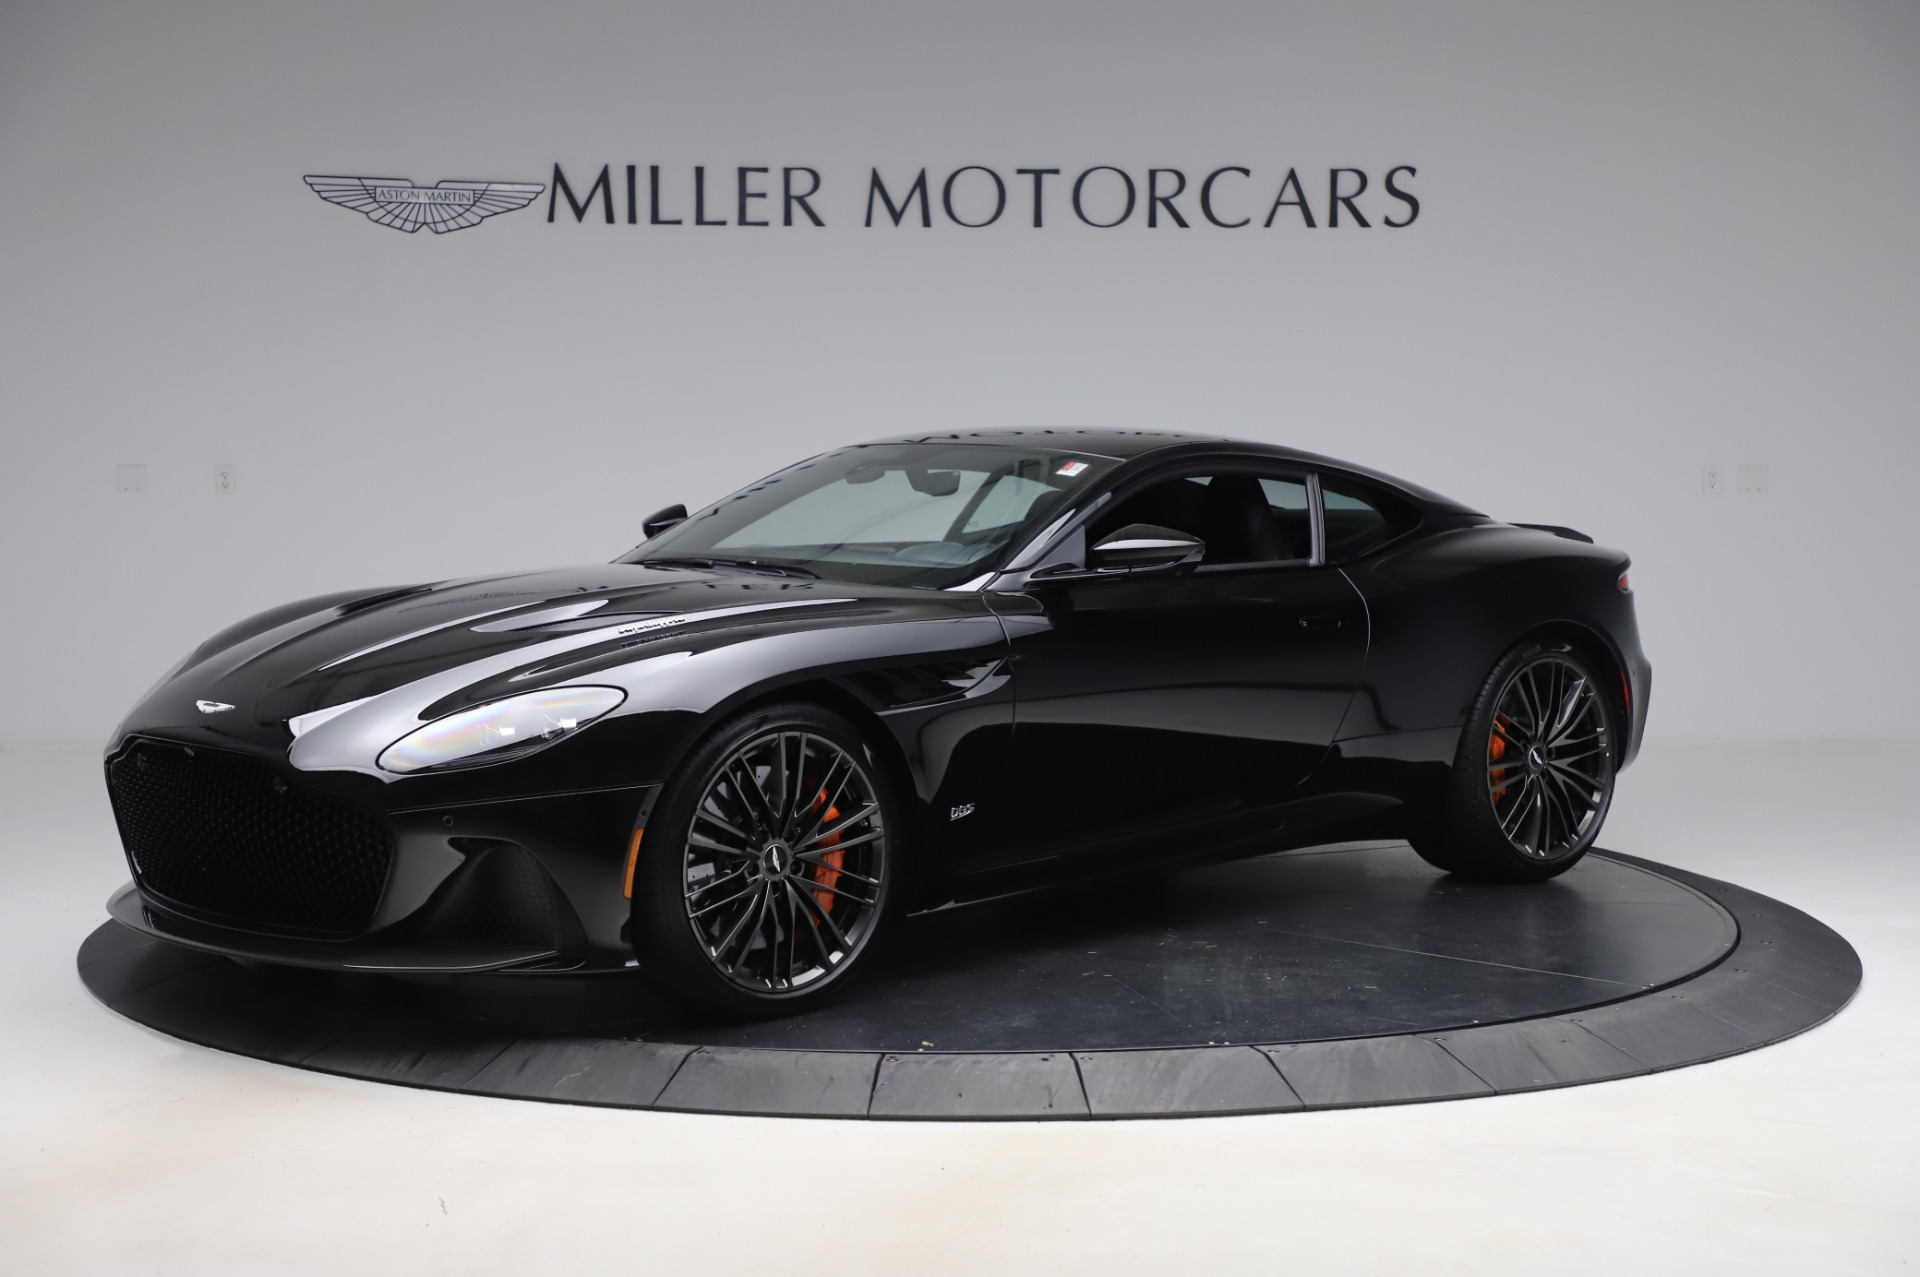 New 2020 Aston Martin DBS Superleggera Coupe for sale $328,786 at Rolls-Royce Motor Cars Greenwich in Greenwich CT 06830 1